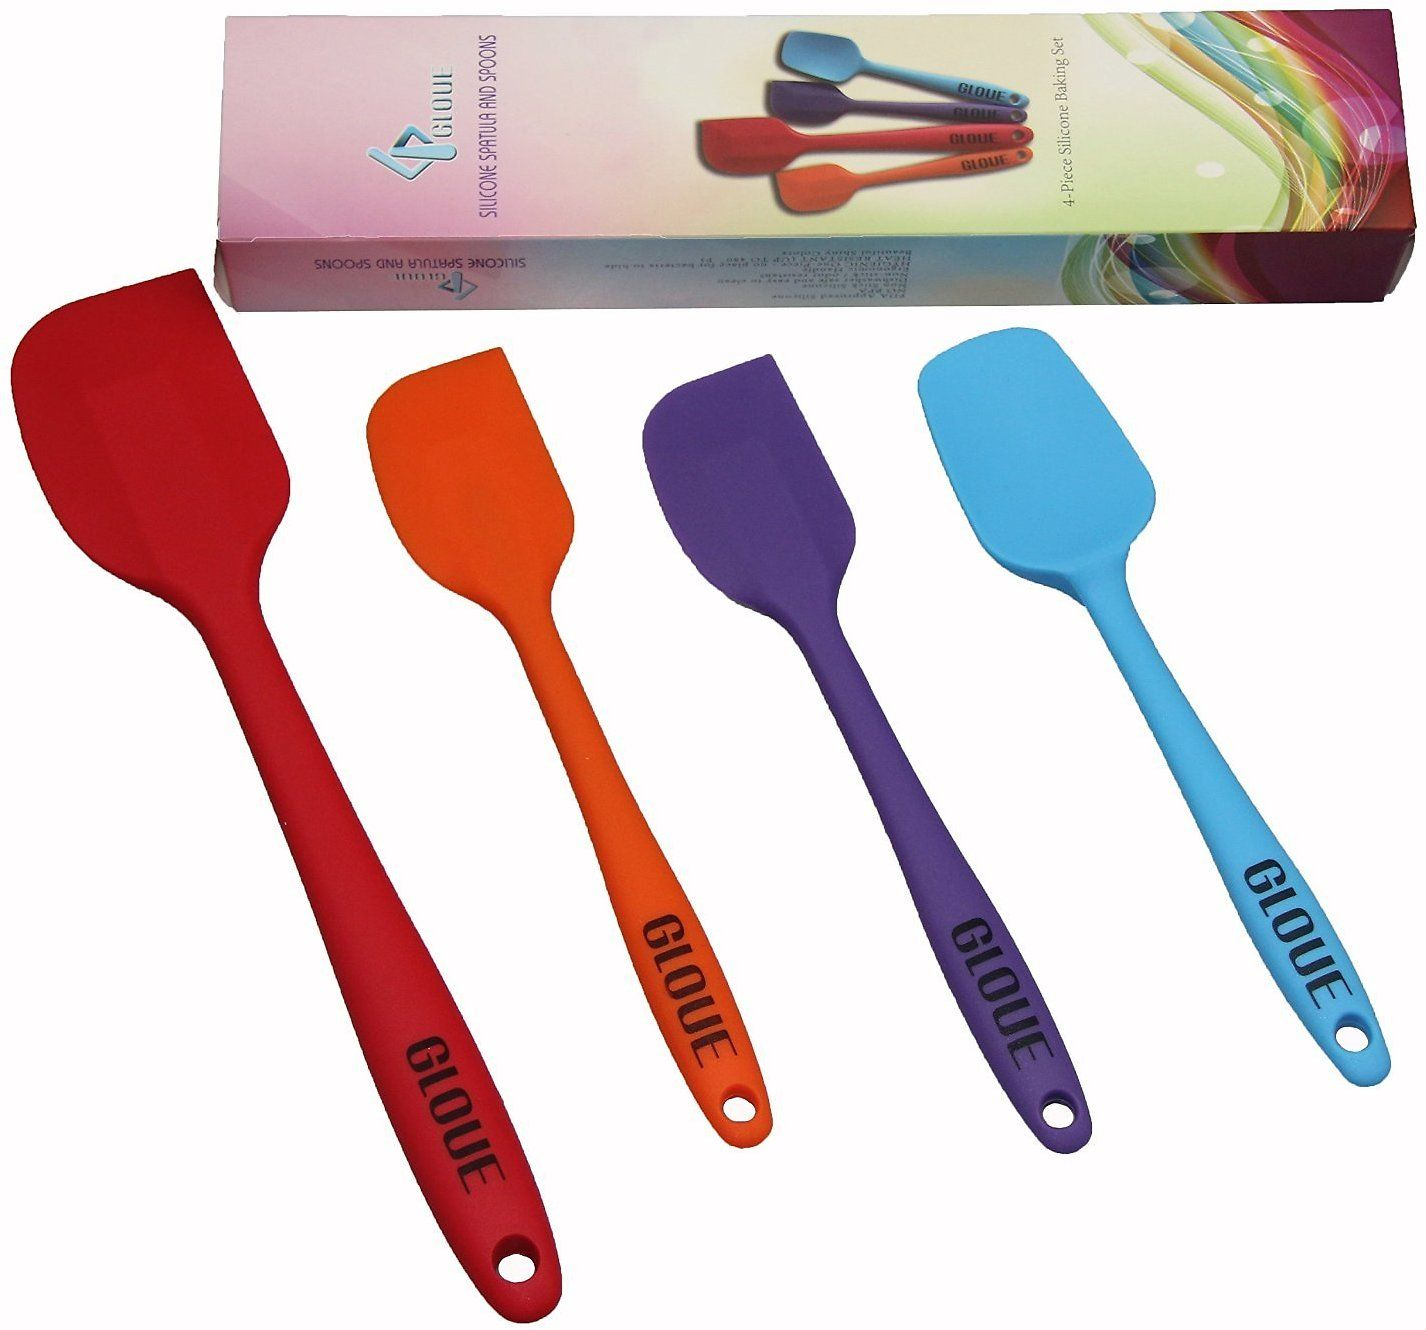 GLOUE Silicone Spatula Set - 4-piece 450oF Heat-Resistant Baking ...